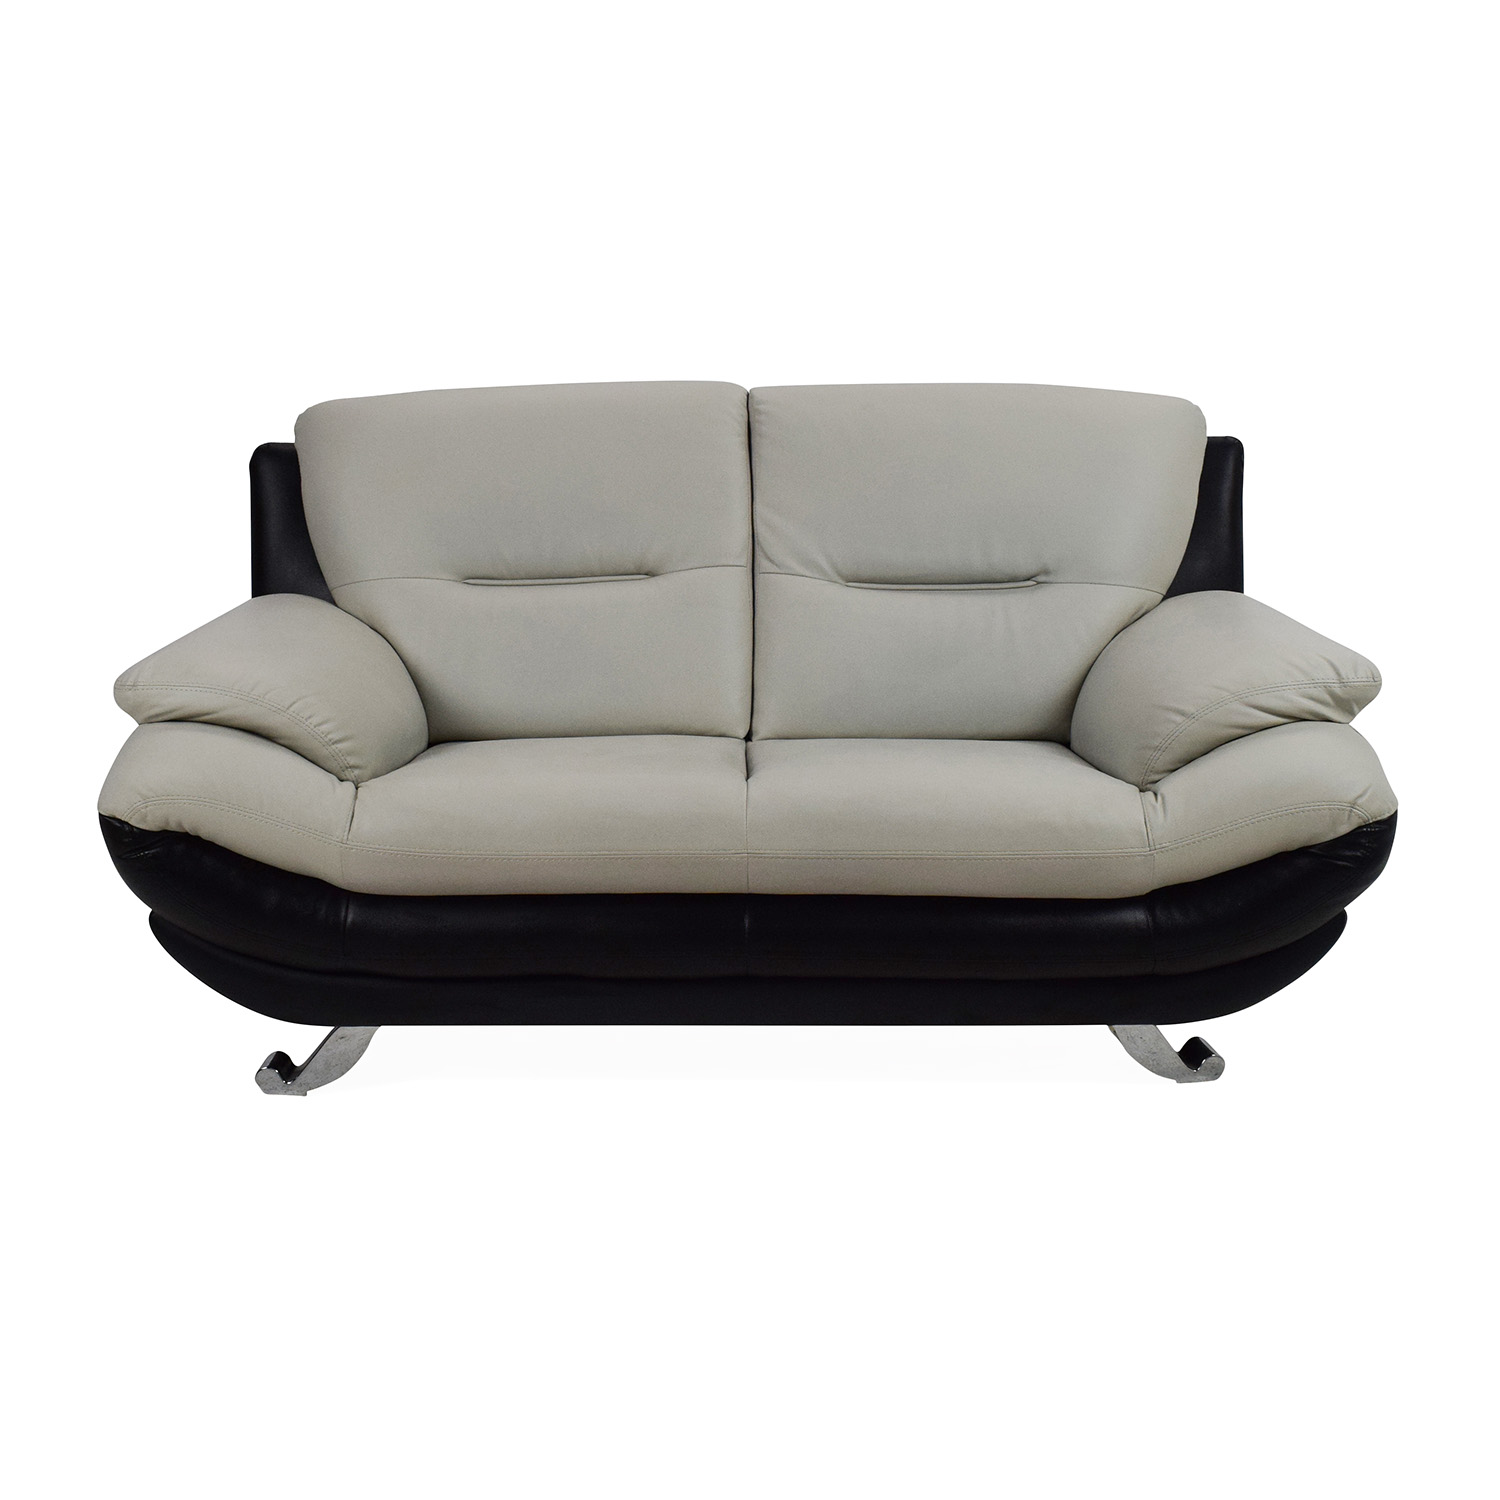 Modern Leather 2 Seater Couch Loveseats